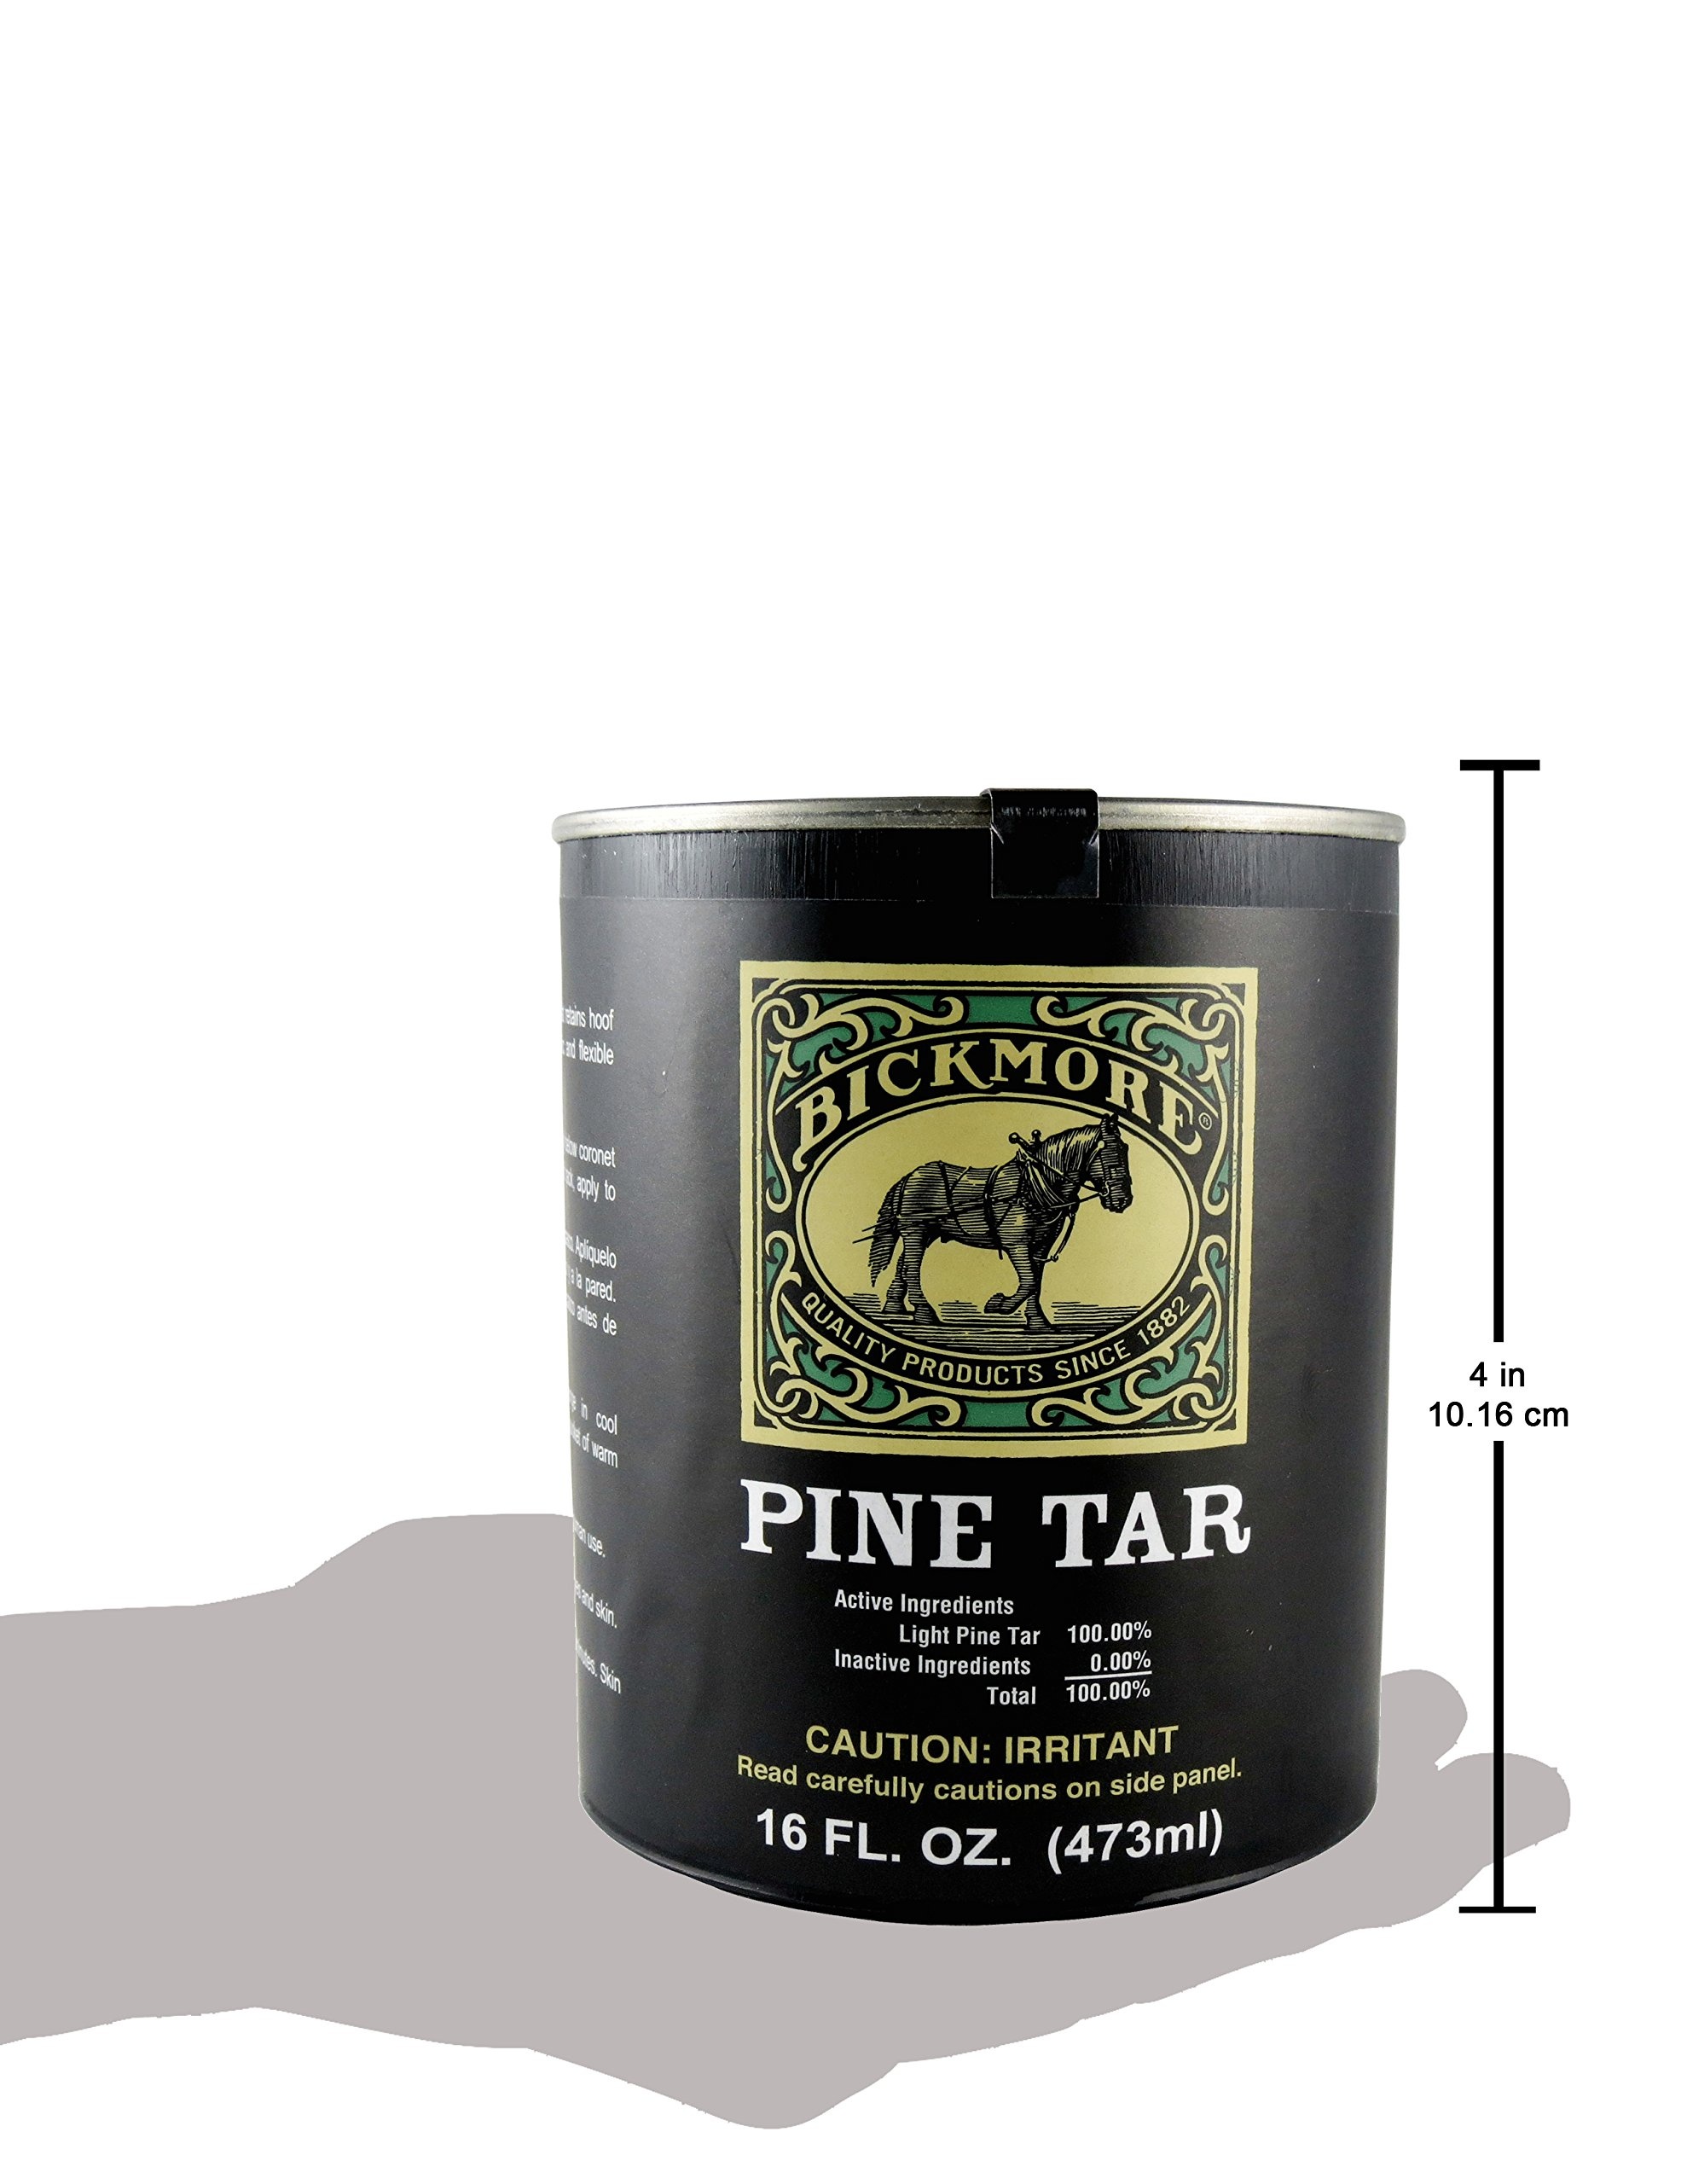 Bickmore Pine Tar 16oz - Hoof Care Formula For Horses by Bickmore (Image #4)